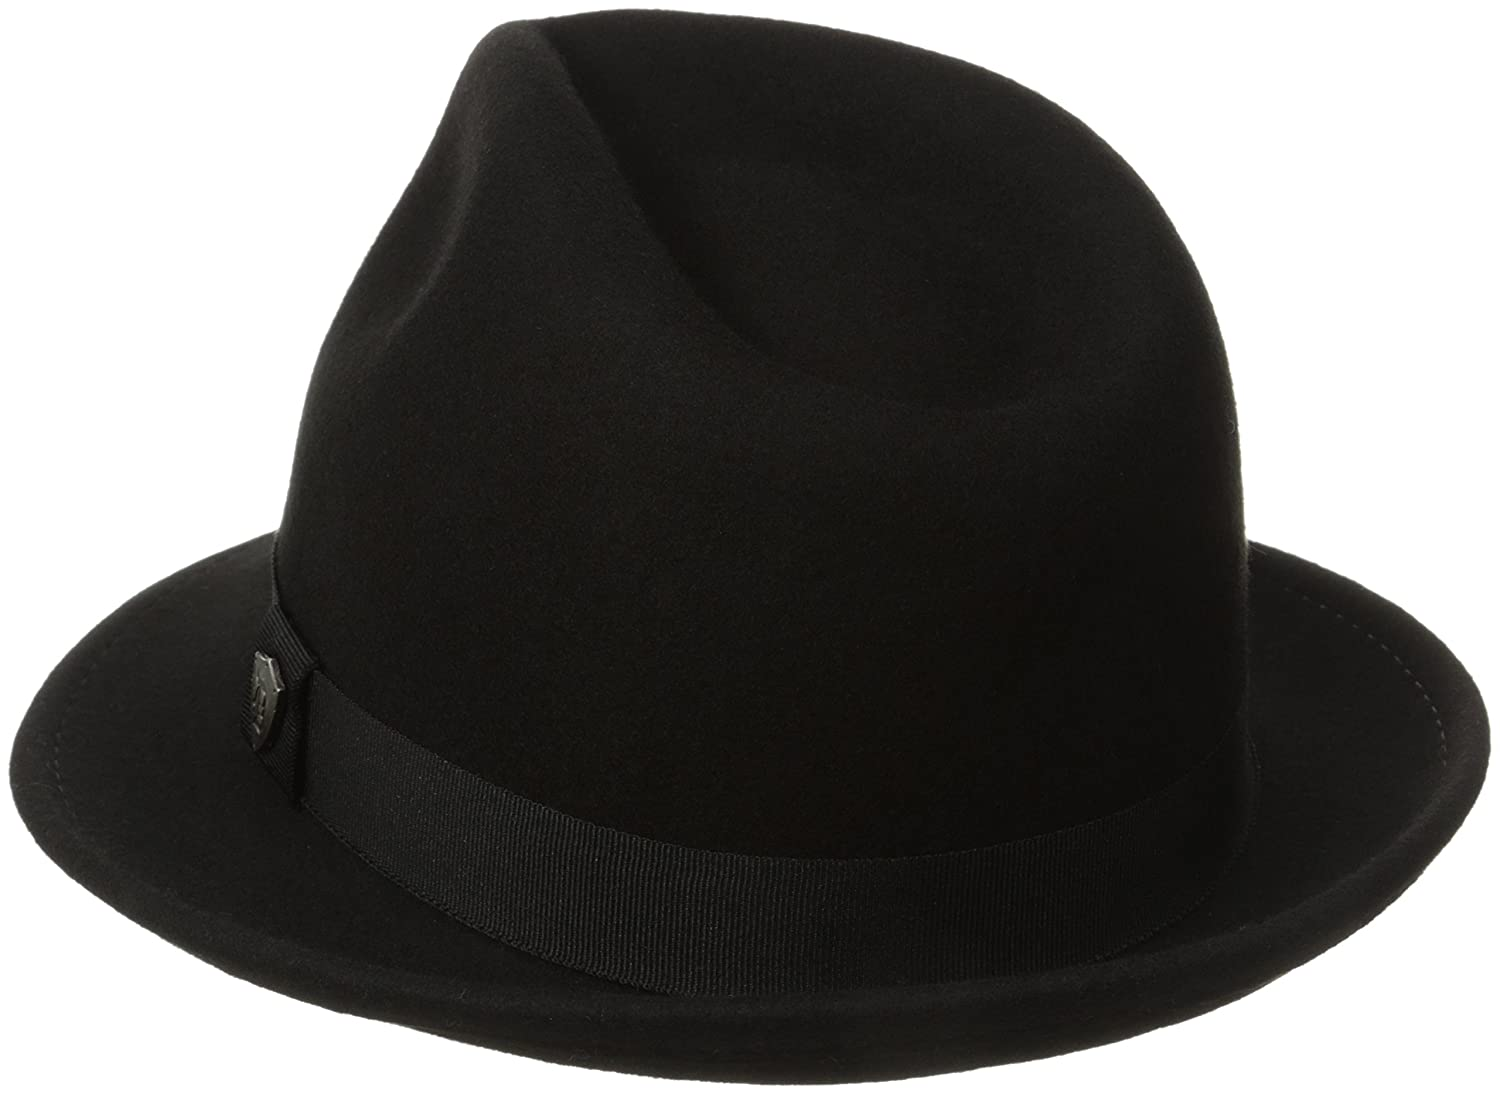 1930s Men's Costumes: Gangster, Clyde Barrow, Mummy, Dracula, Frankenstein Dorfman Pacific Mens Wool Felt Hat $44.95 AT vintagedancer.com